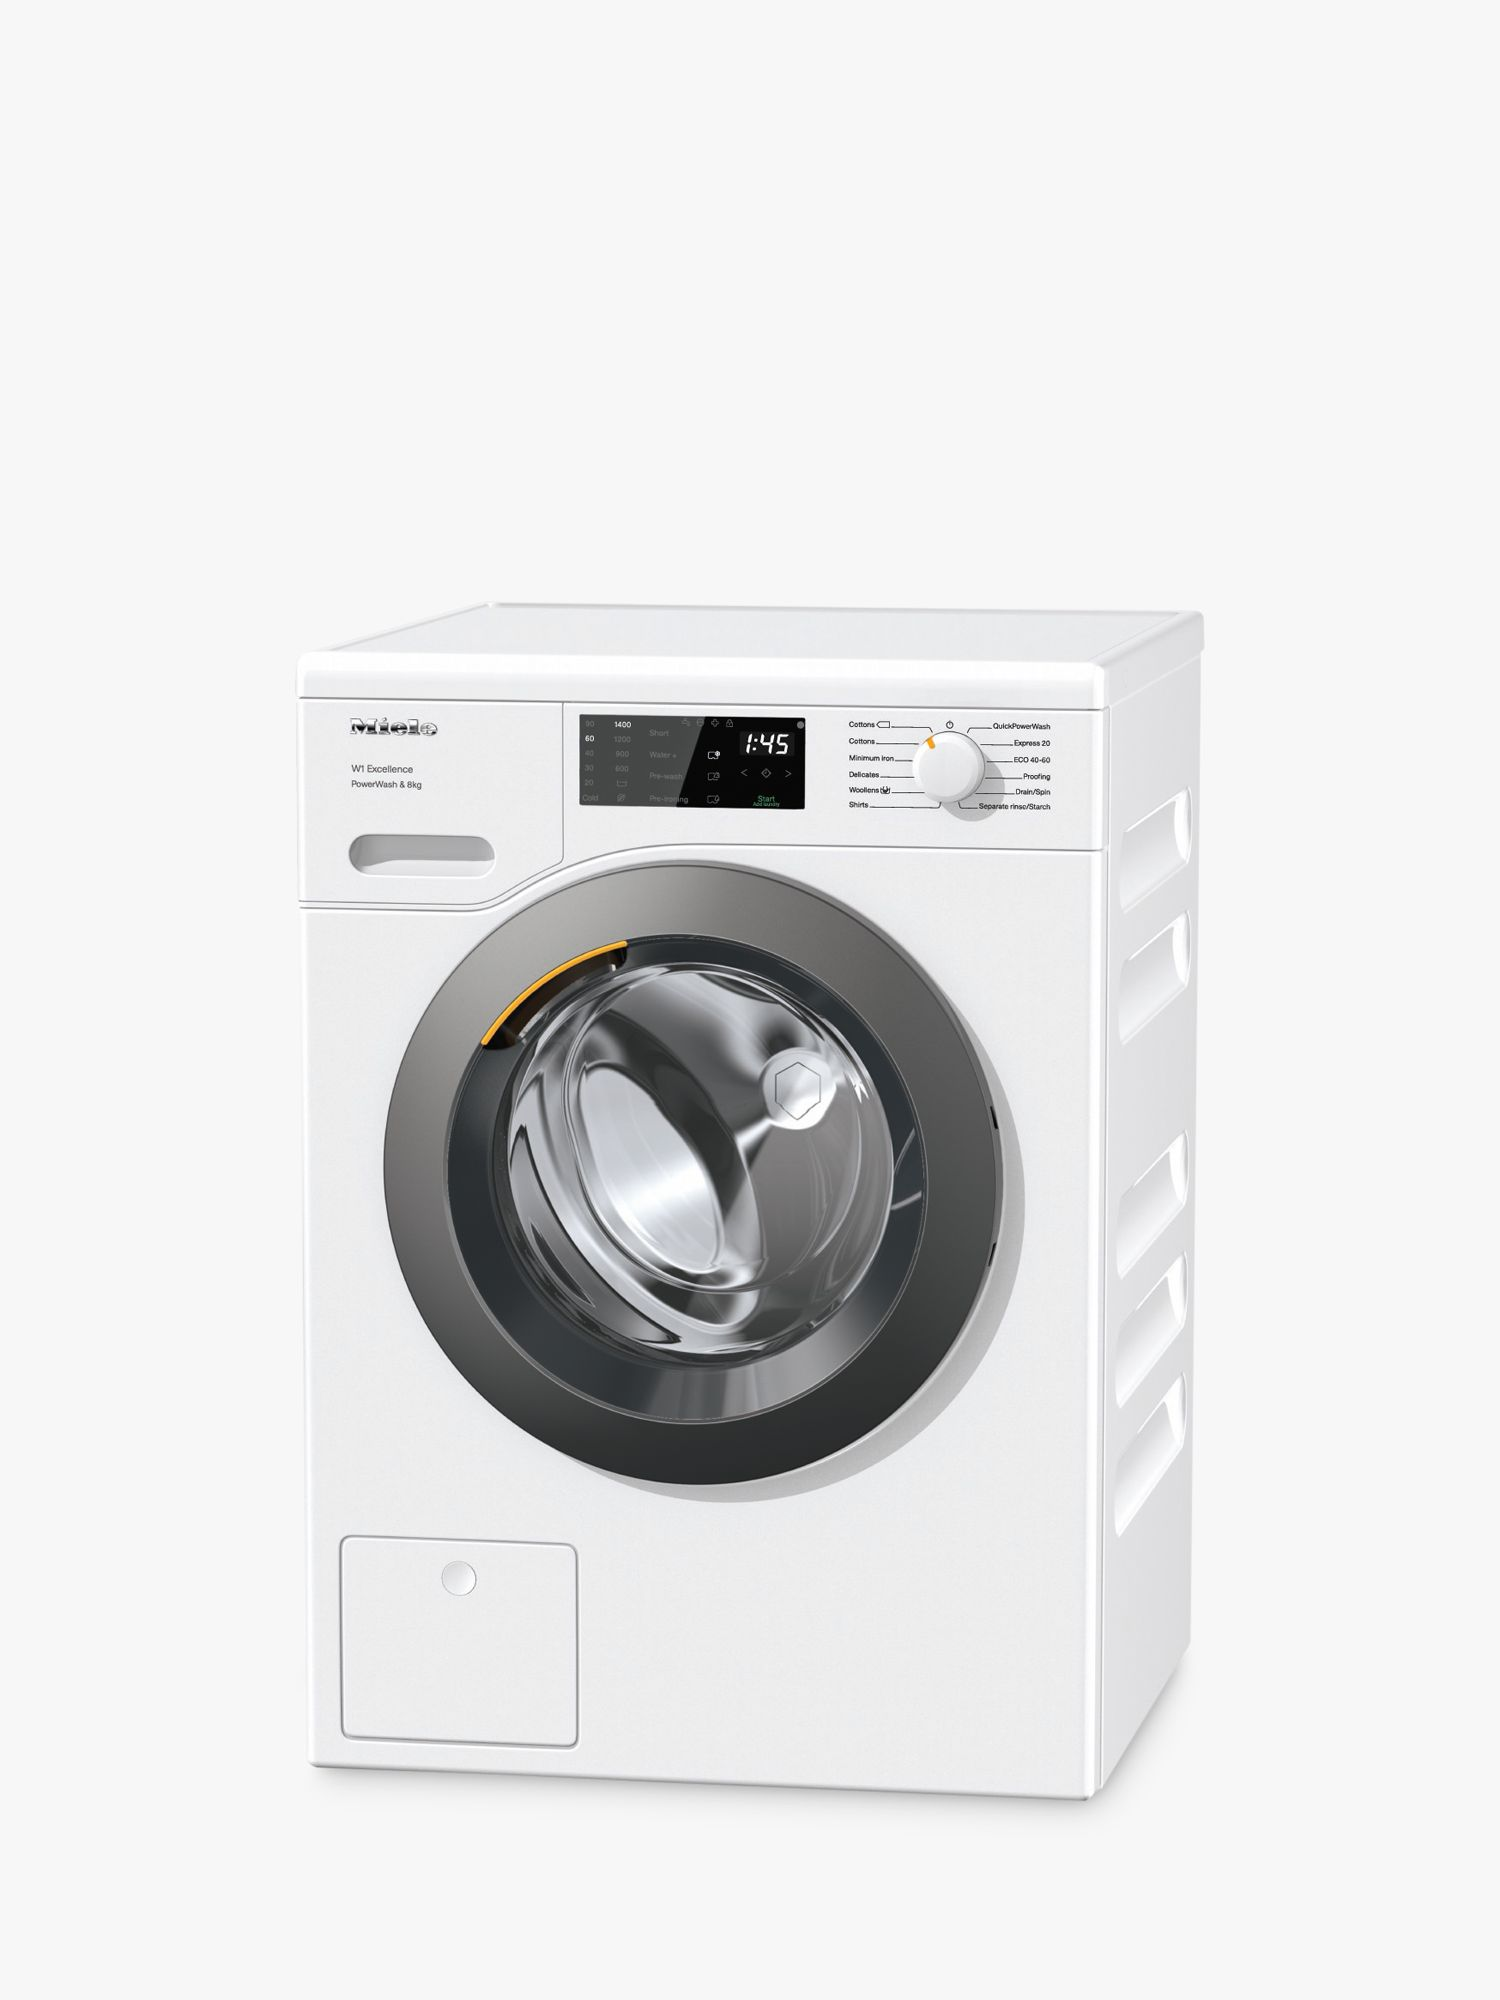 Miele Miele WED325 Freestanding Washing Machine, 8kg Load, 1400rpm, A+++ Energy Rating, White